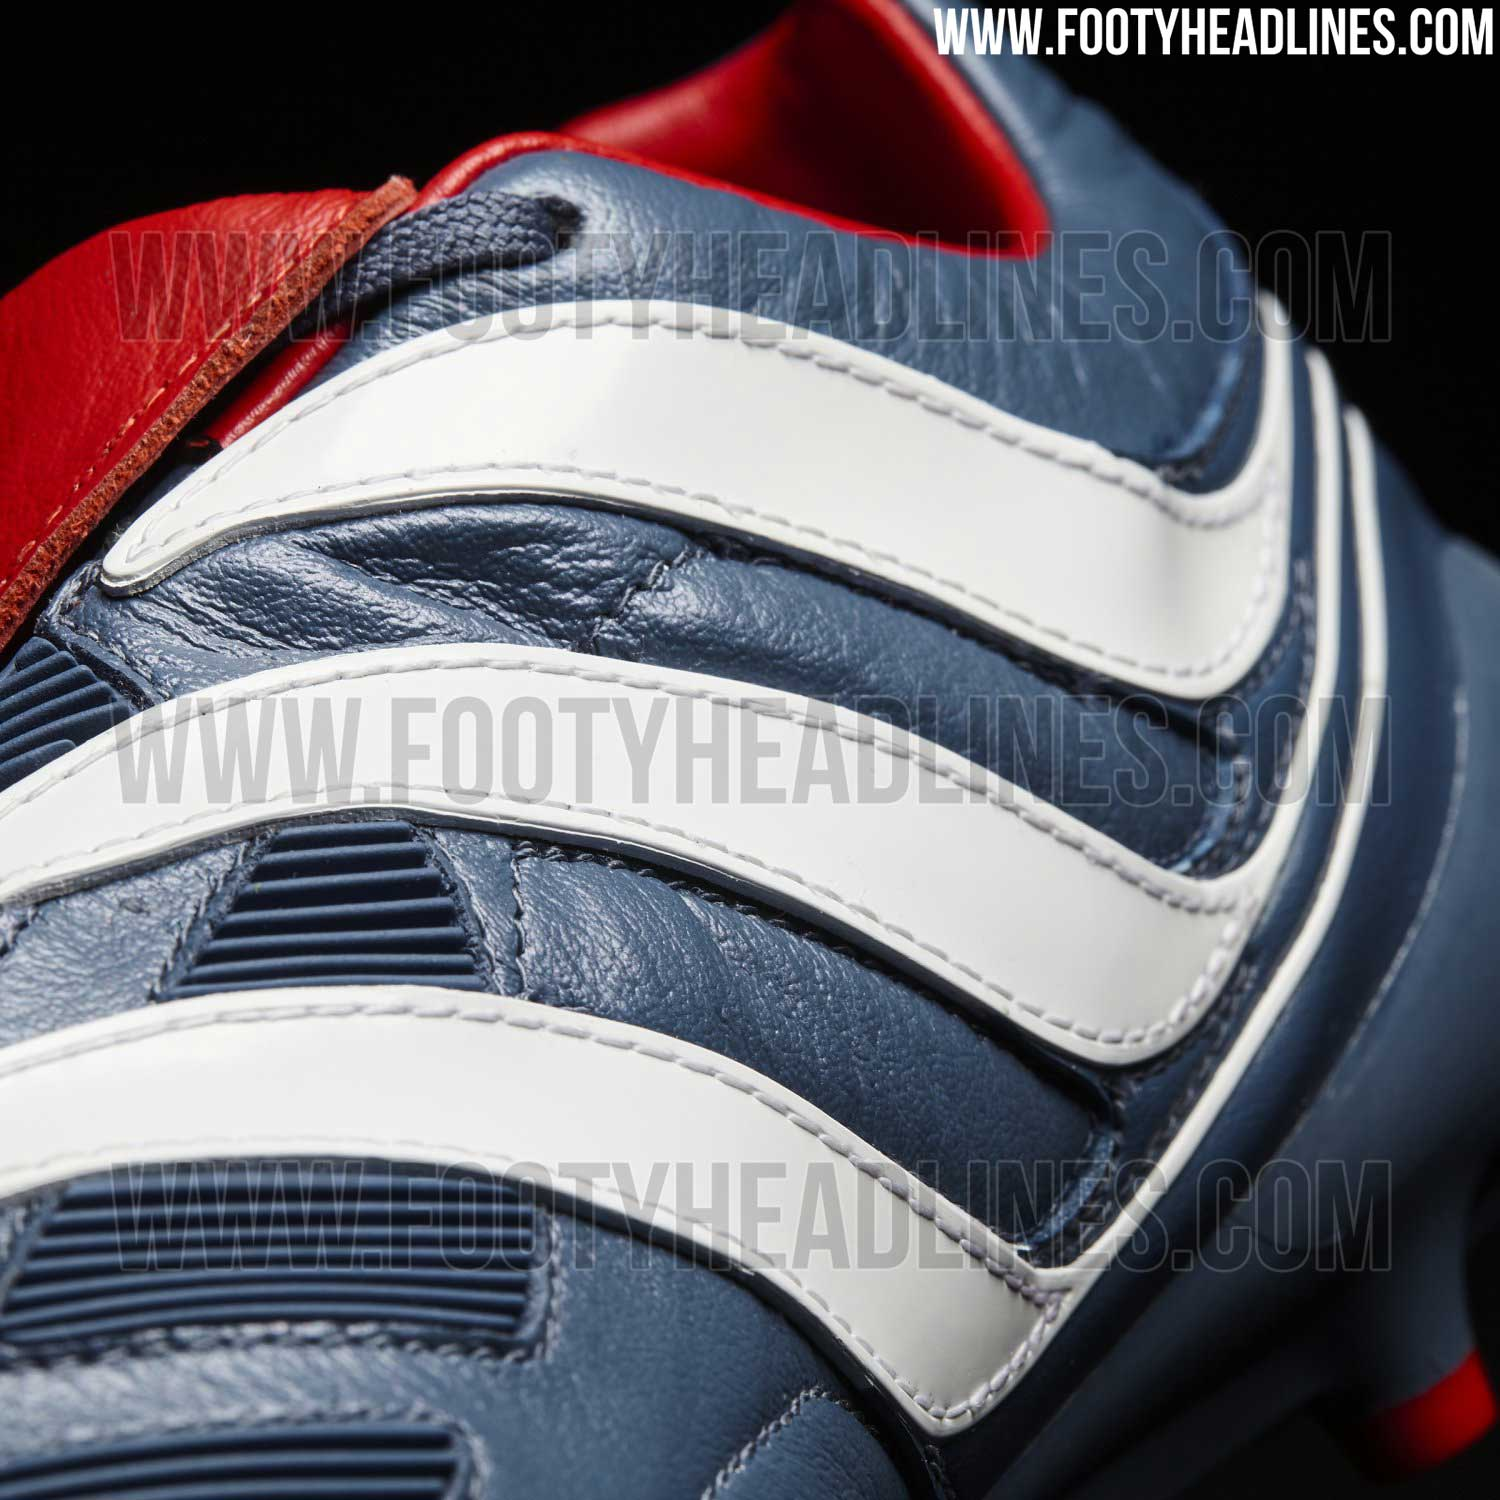 watch 5ecd0 5337f ... clearance adidas predator 1994 remake boot released footy headlines  additionally the rubber elements at the front